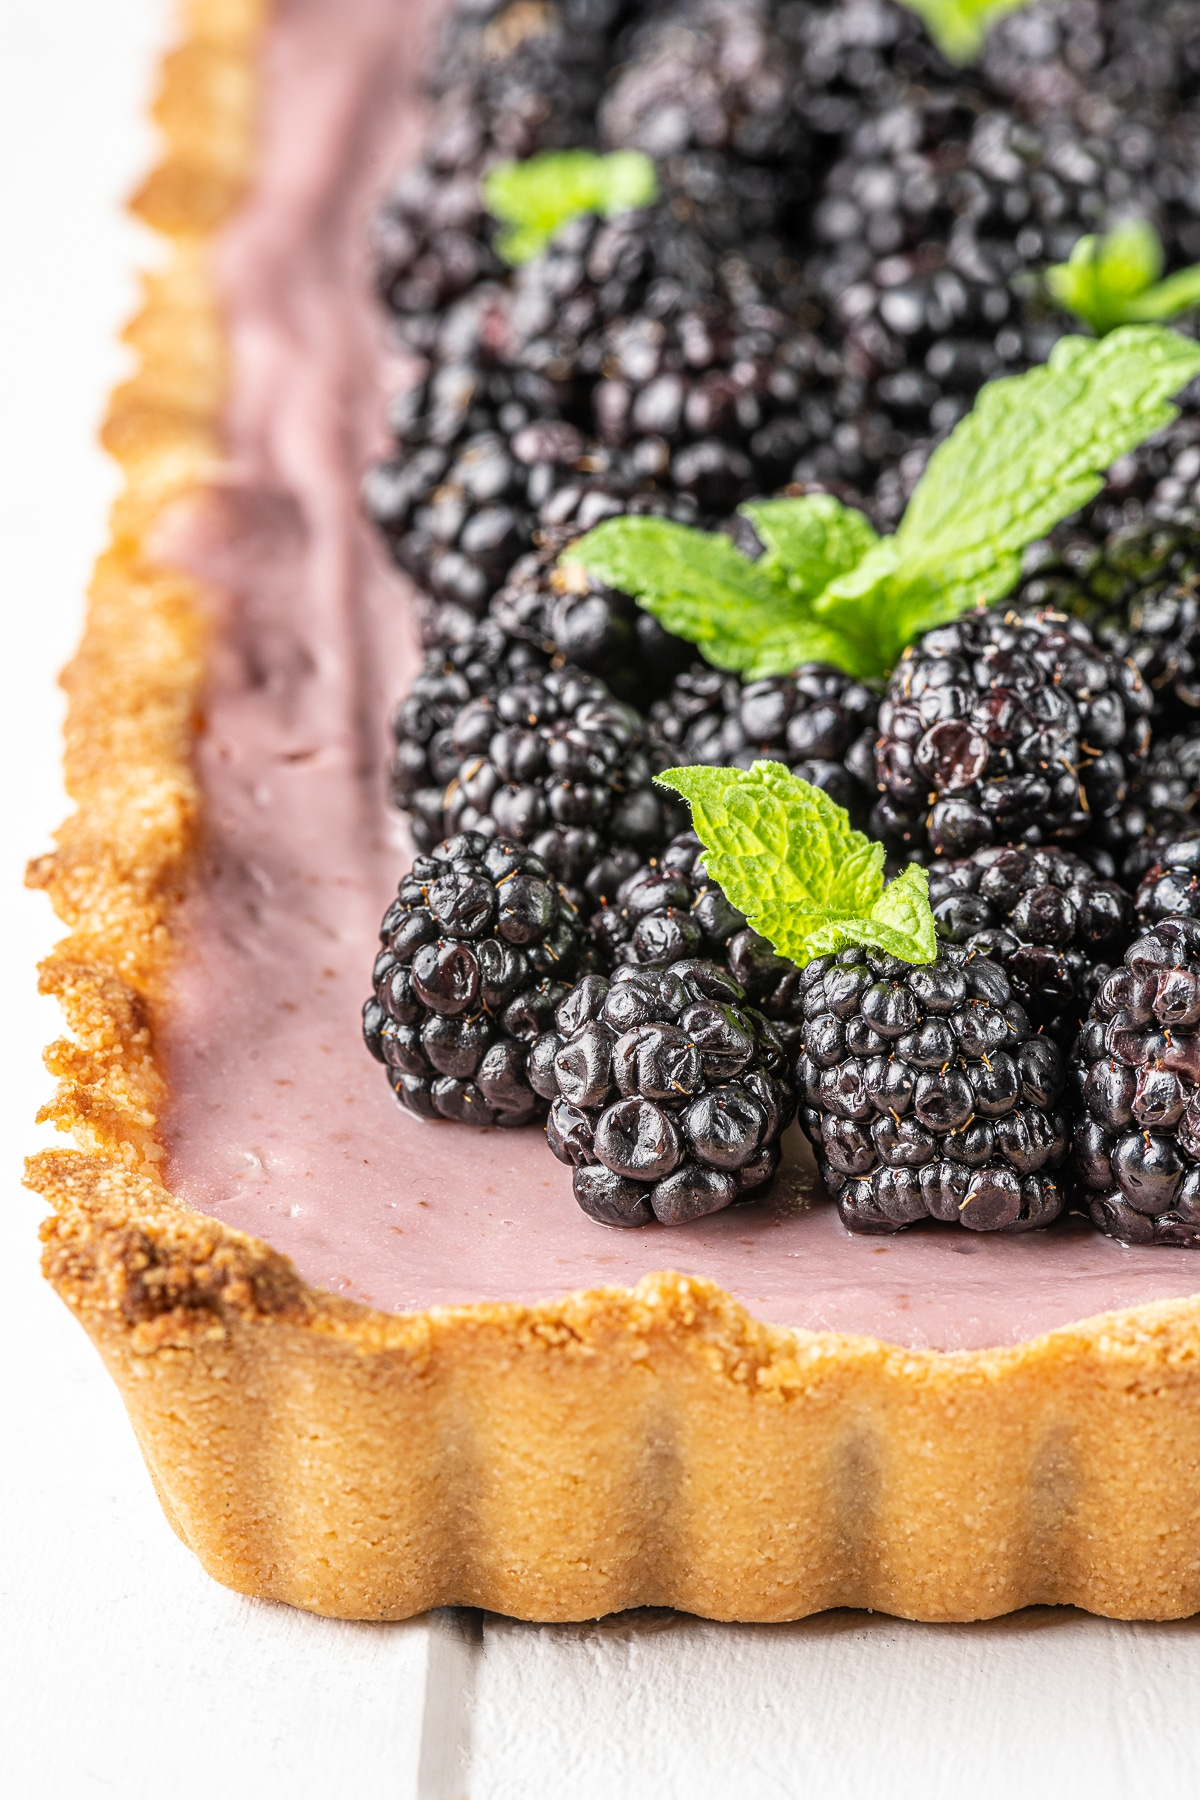 A close up image of a fresh blackberry tart with golden baked ruffle crust and fresh glistening blackberries garnished with sprigs of bright green mint leaves